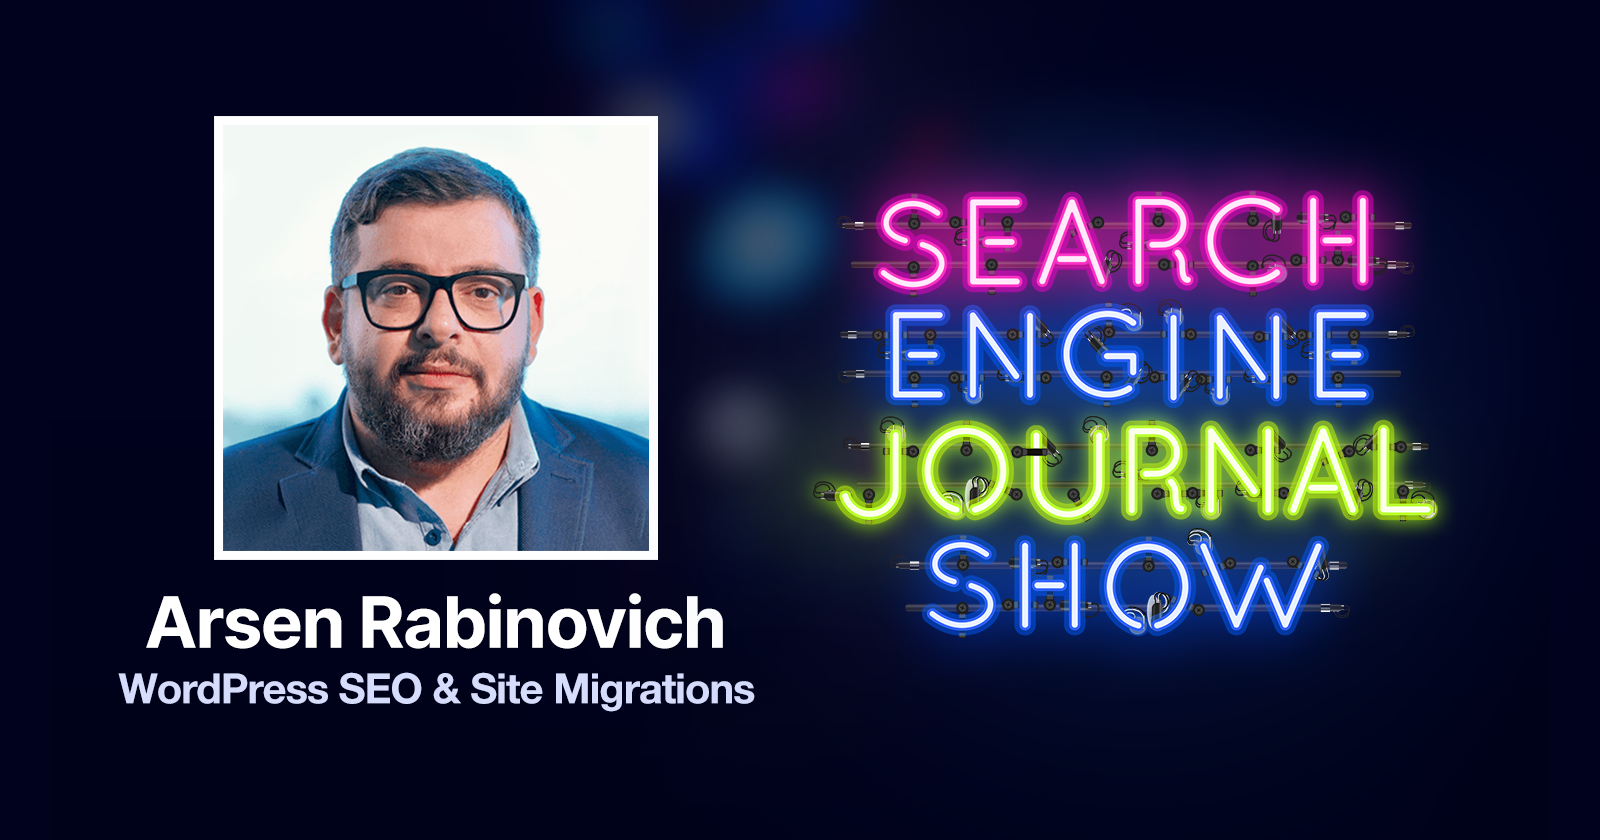 Wordpress SEO and Site Migrations with Arsen Rabinovich [Podcast]